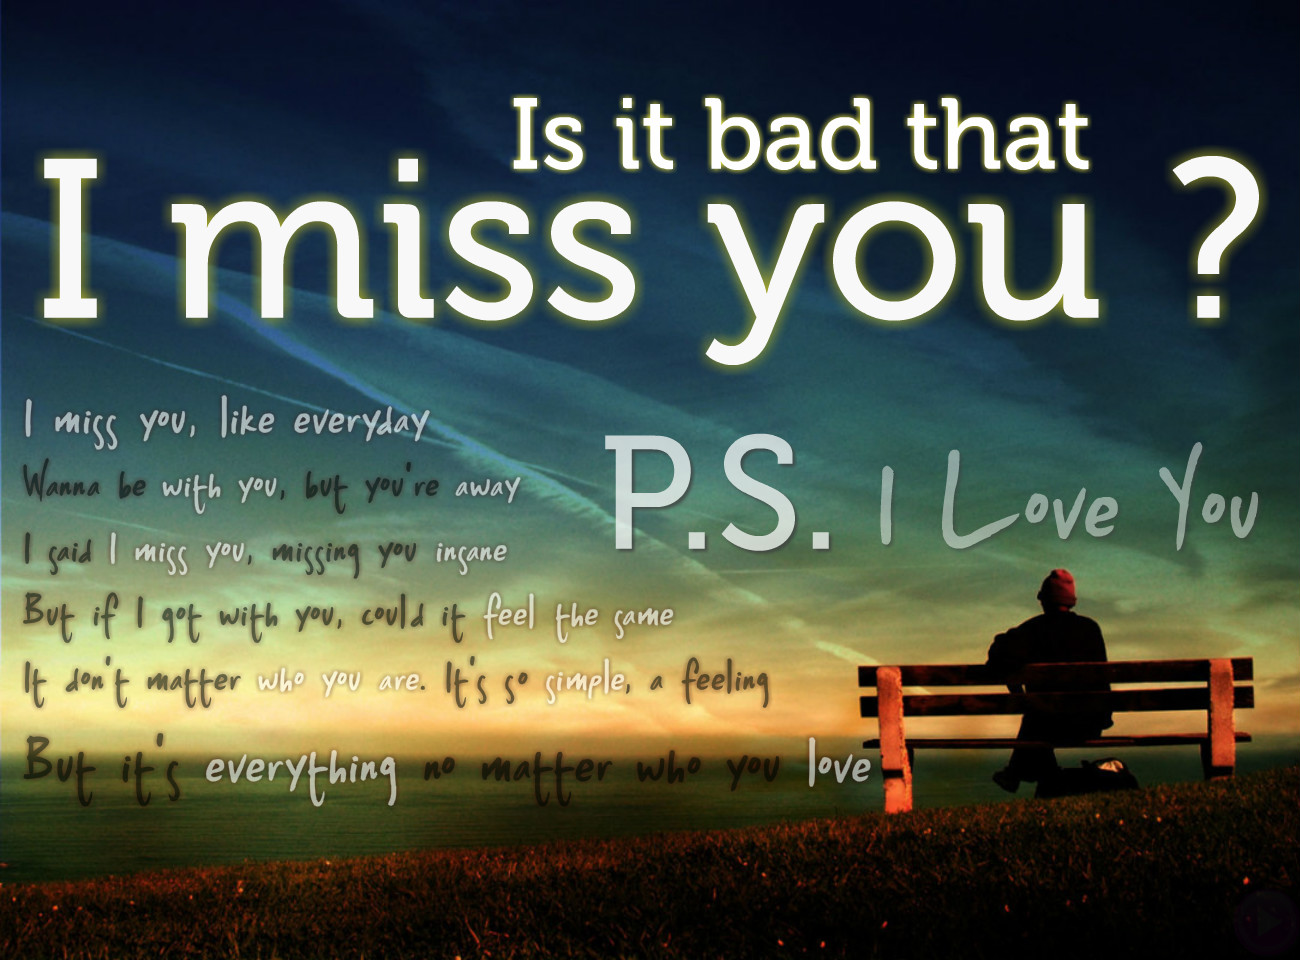 Missing You Quotes For Her Romantic Messages  Flirty Text Messages  Everlasting Love I